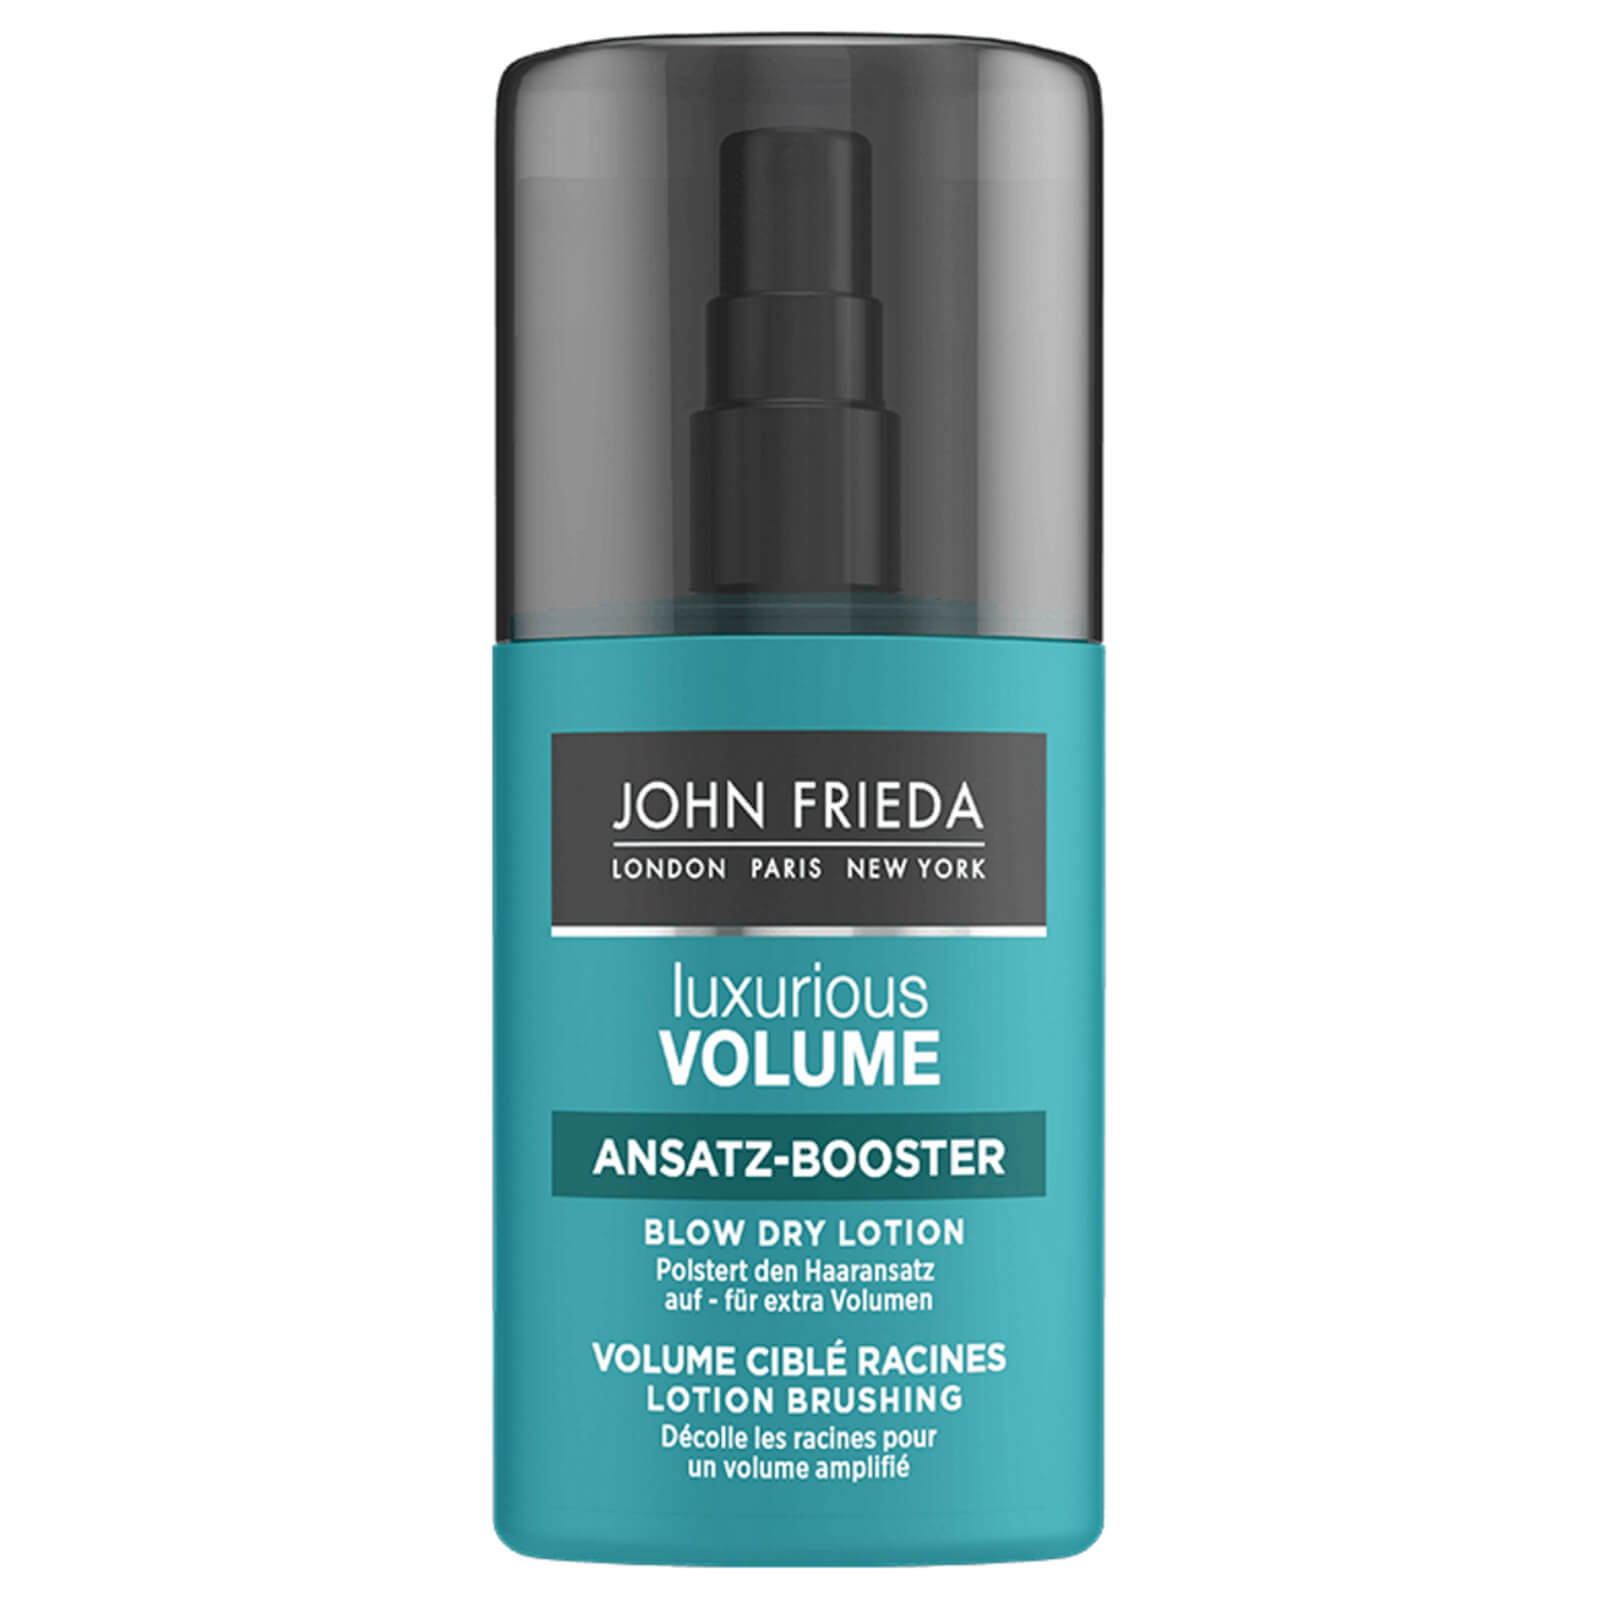 John Frieda Luxurious Volume Ansatz Booster